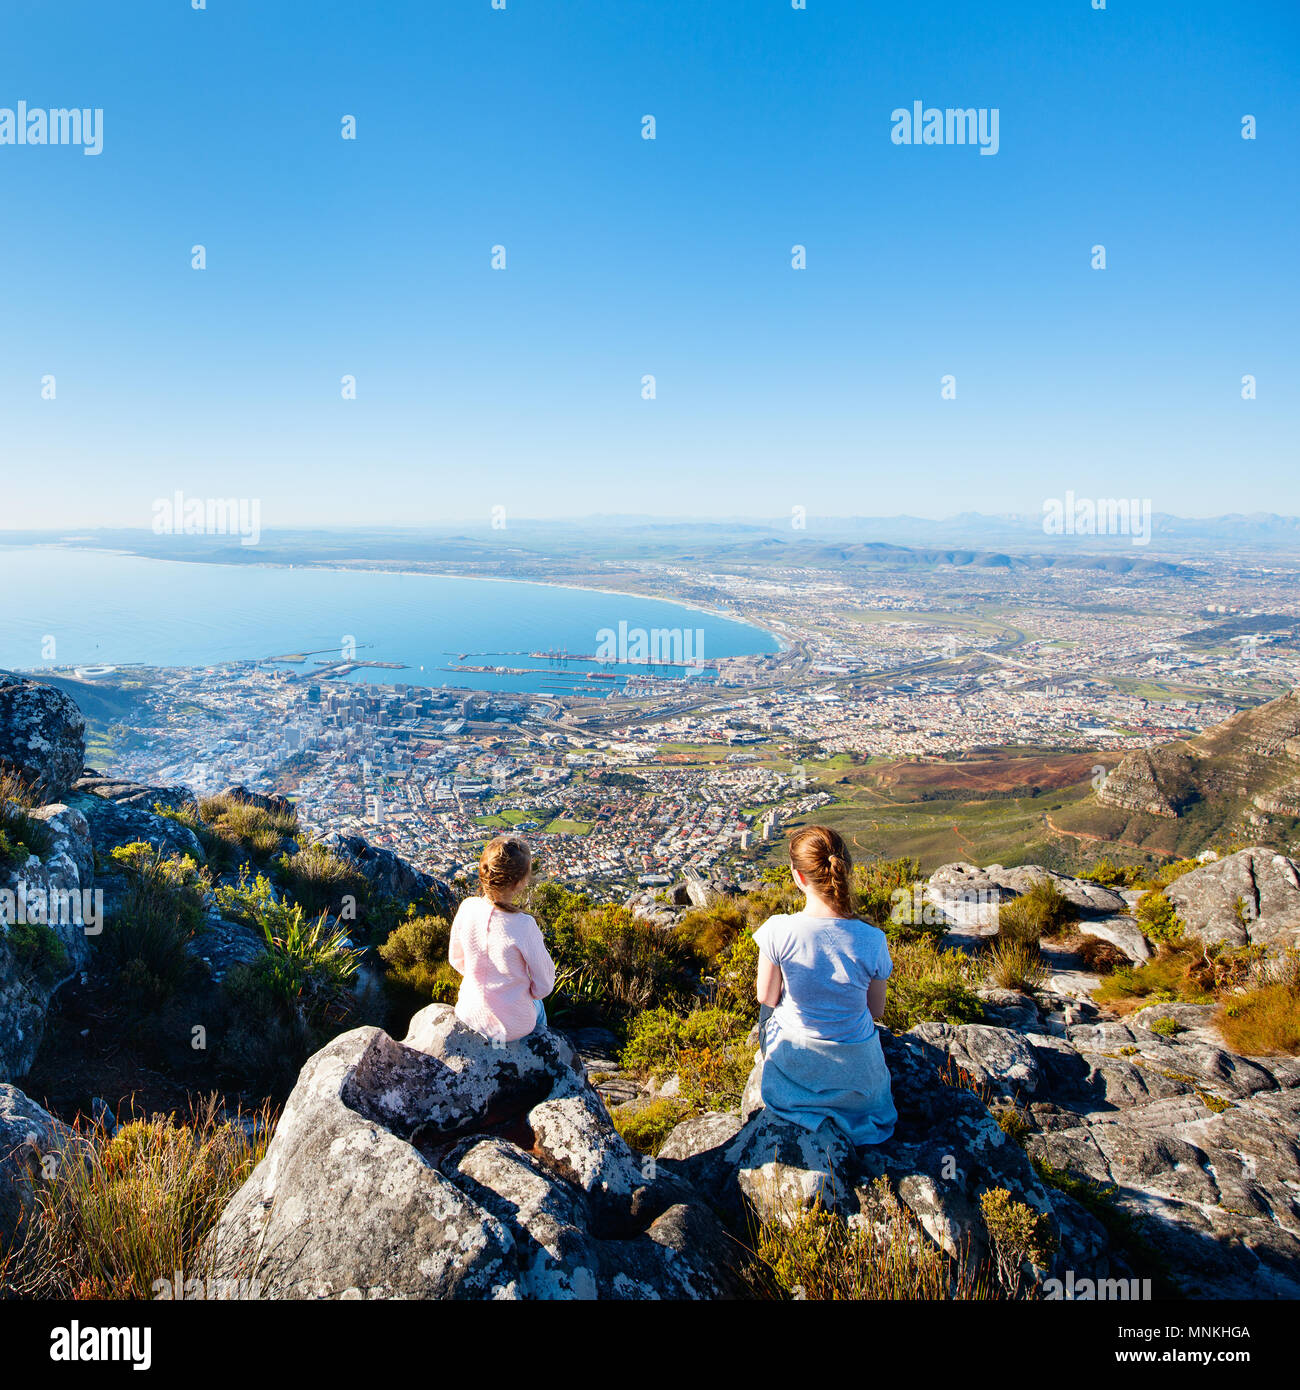 Family enjoying breathtaking views of Cape Town from top of Table mountain - Stock Image